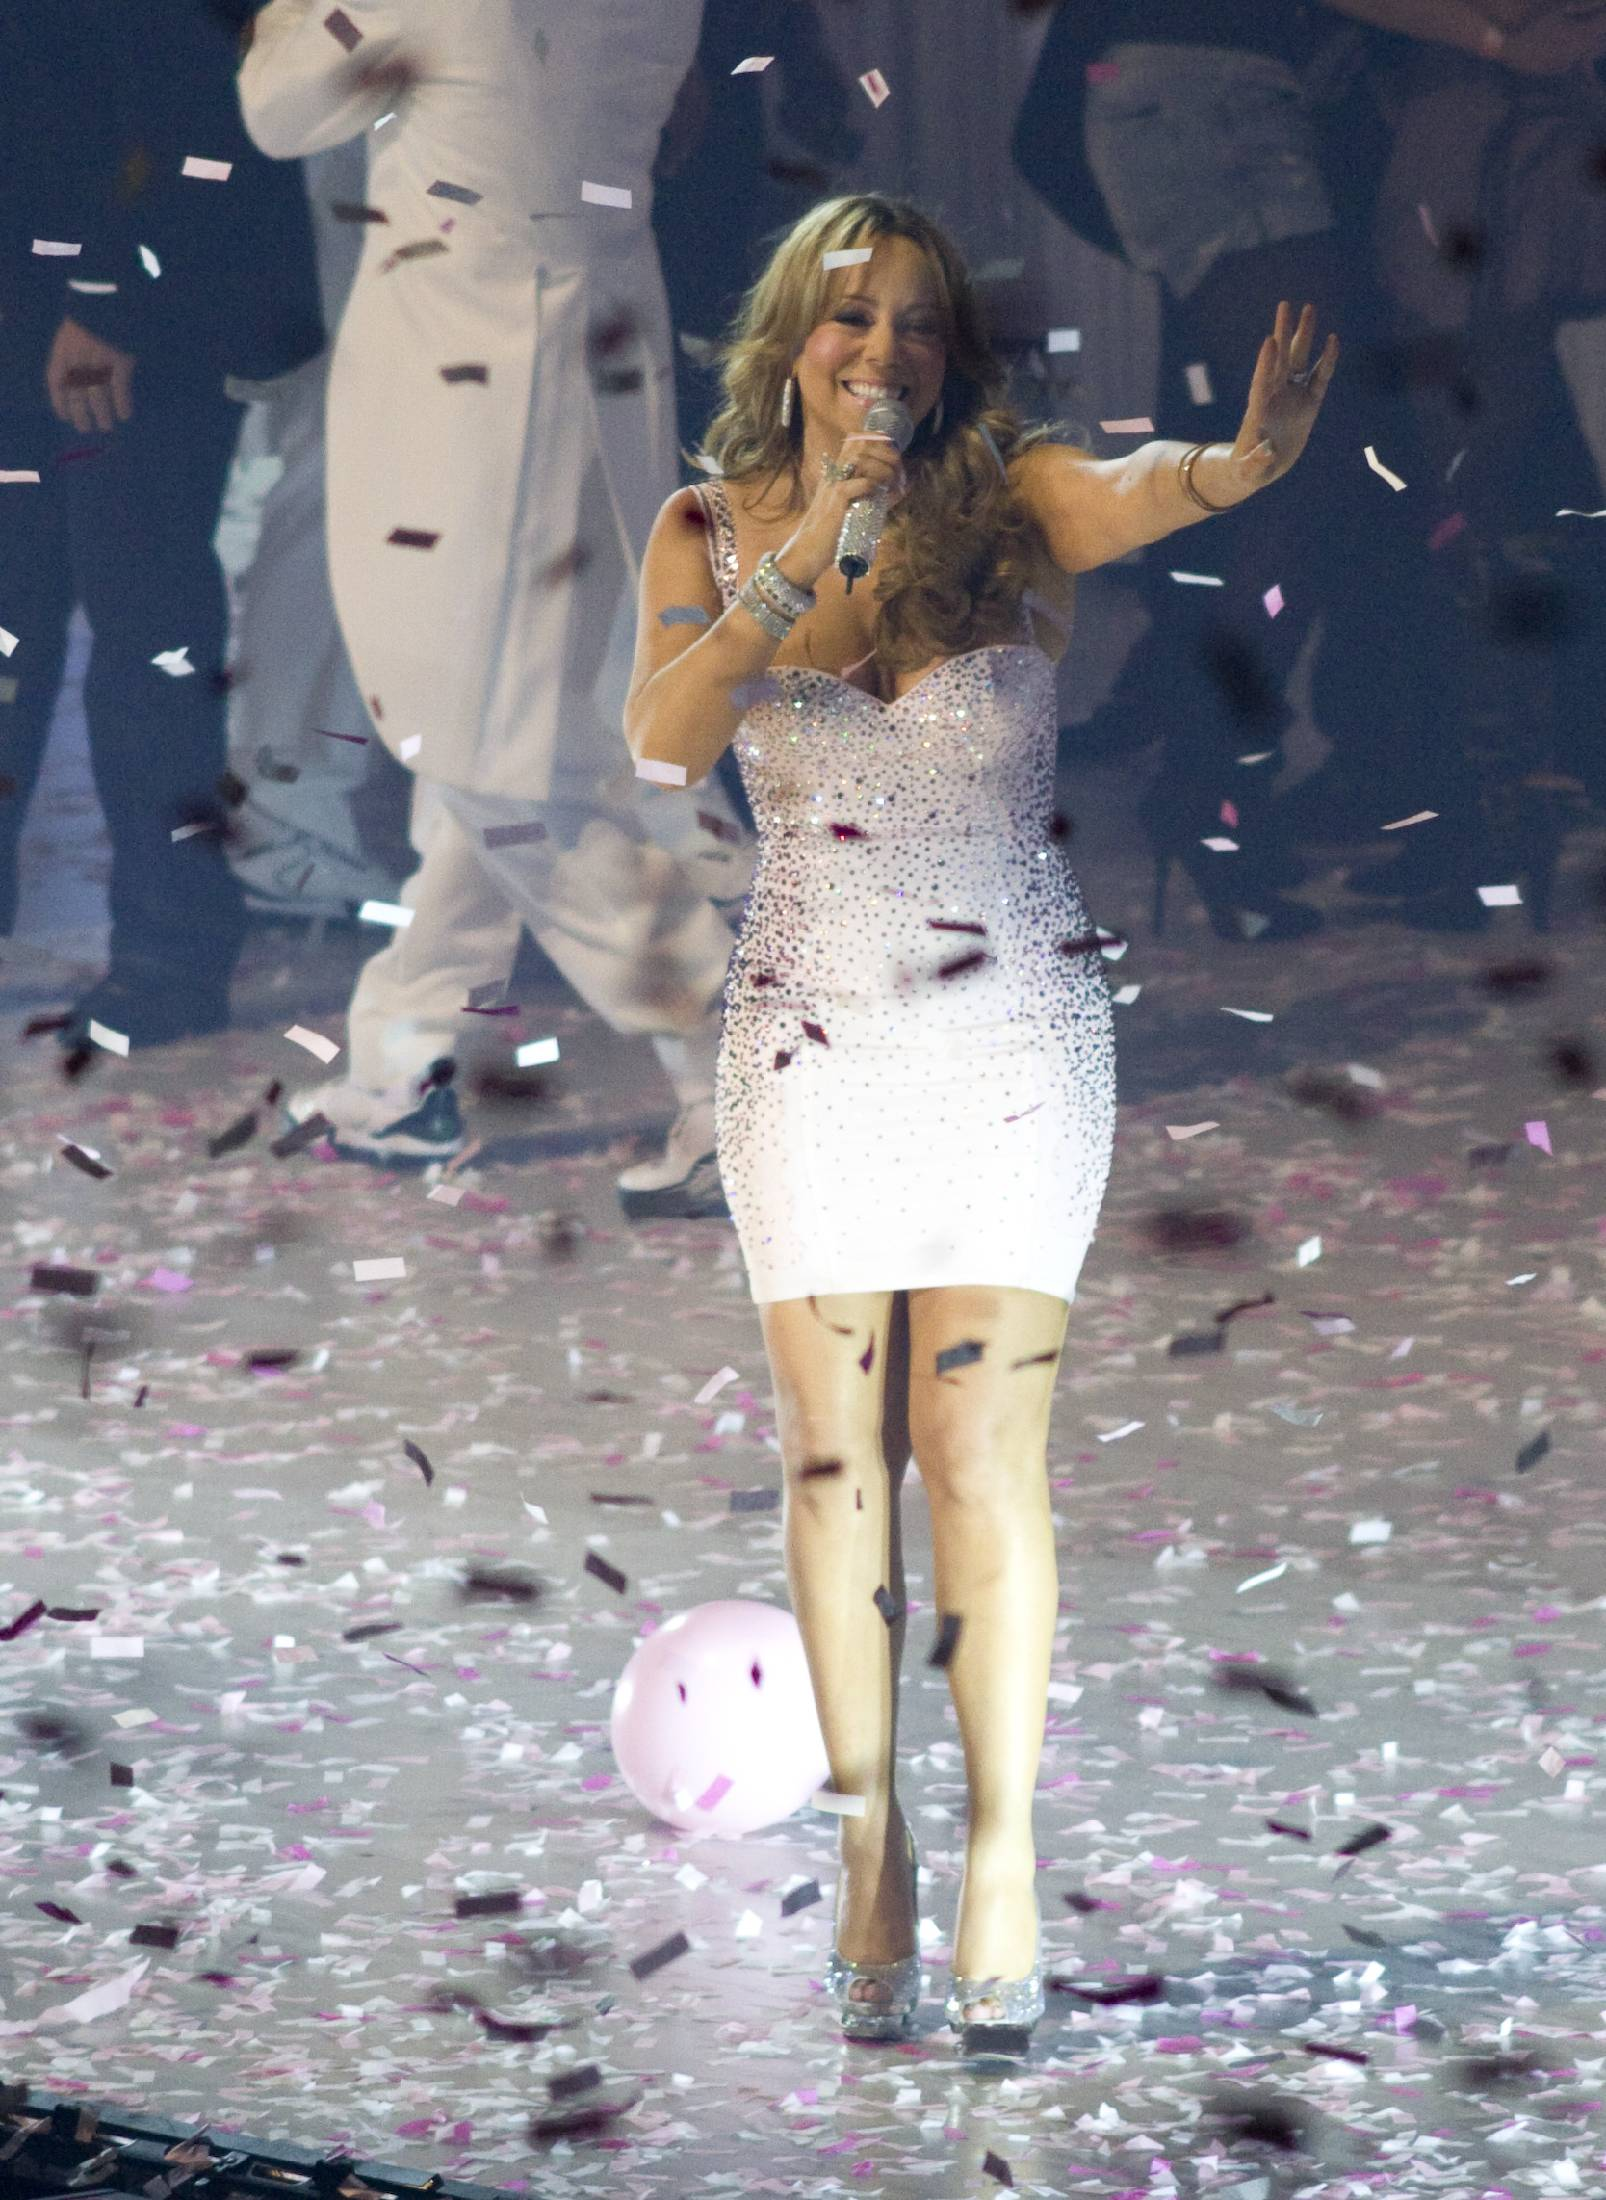 53428_Mariah_Carey_performs_at_Madison_Square_Garden_in_New_York_City-2_122_119lo.jpg